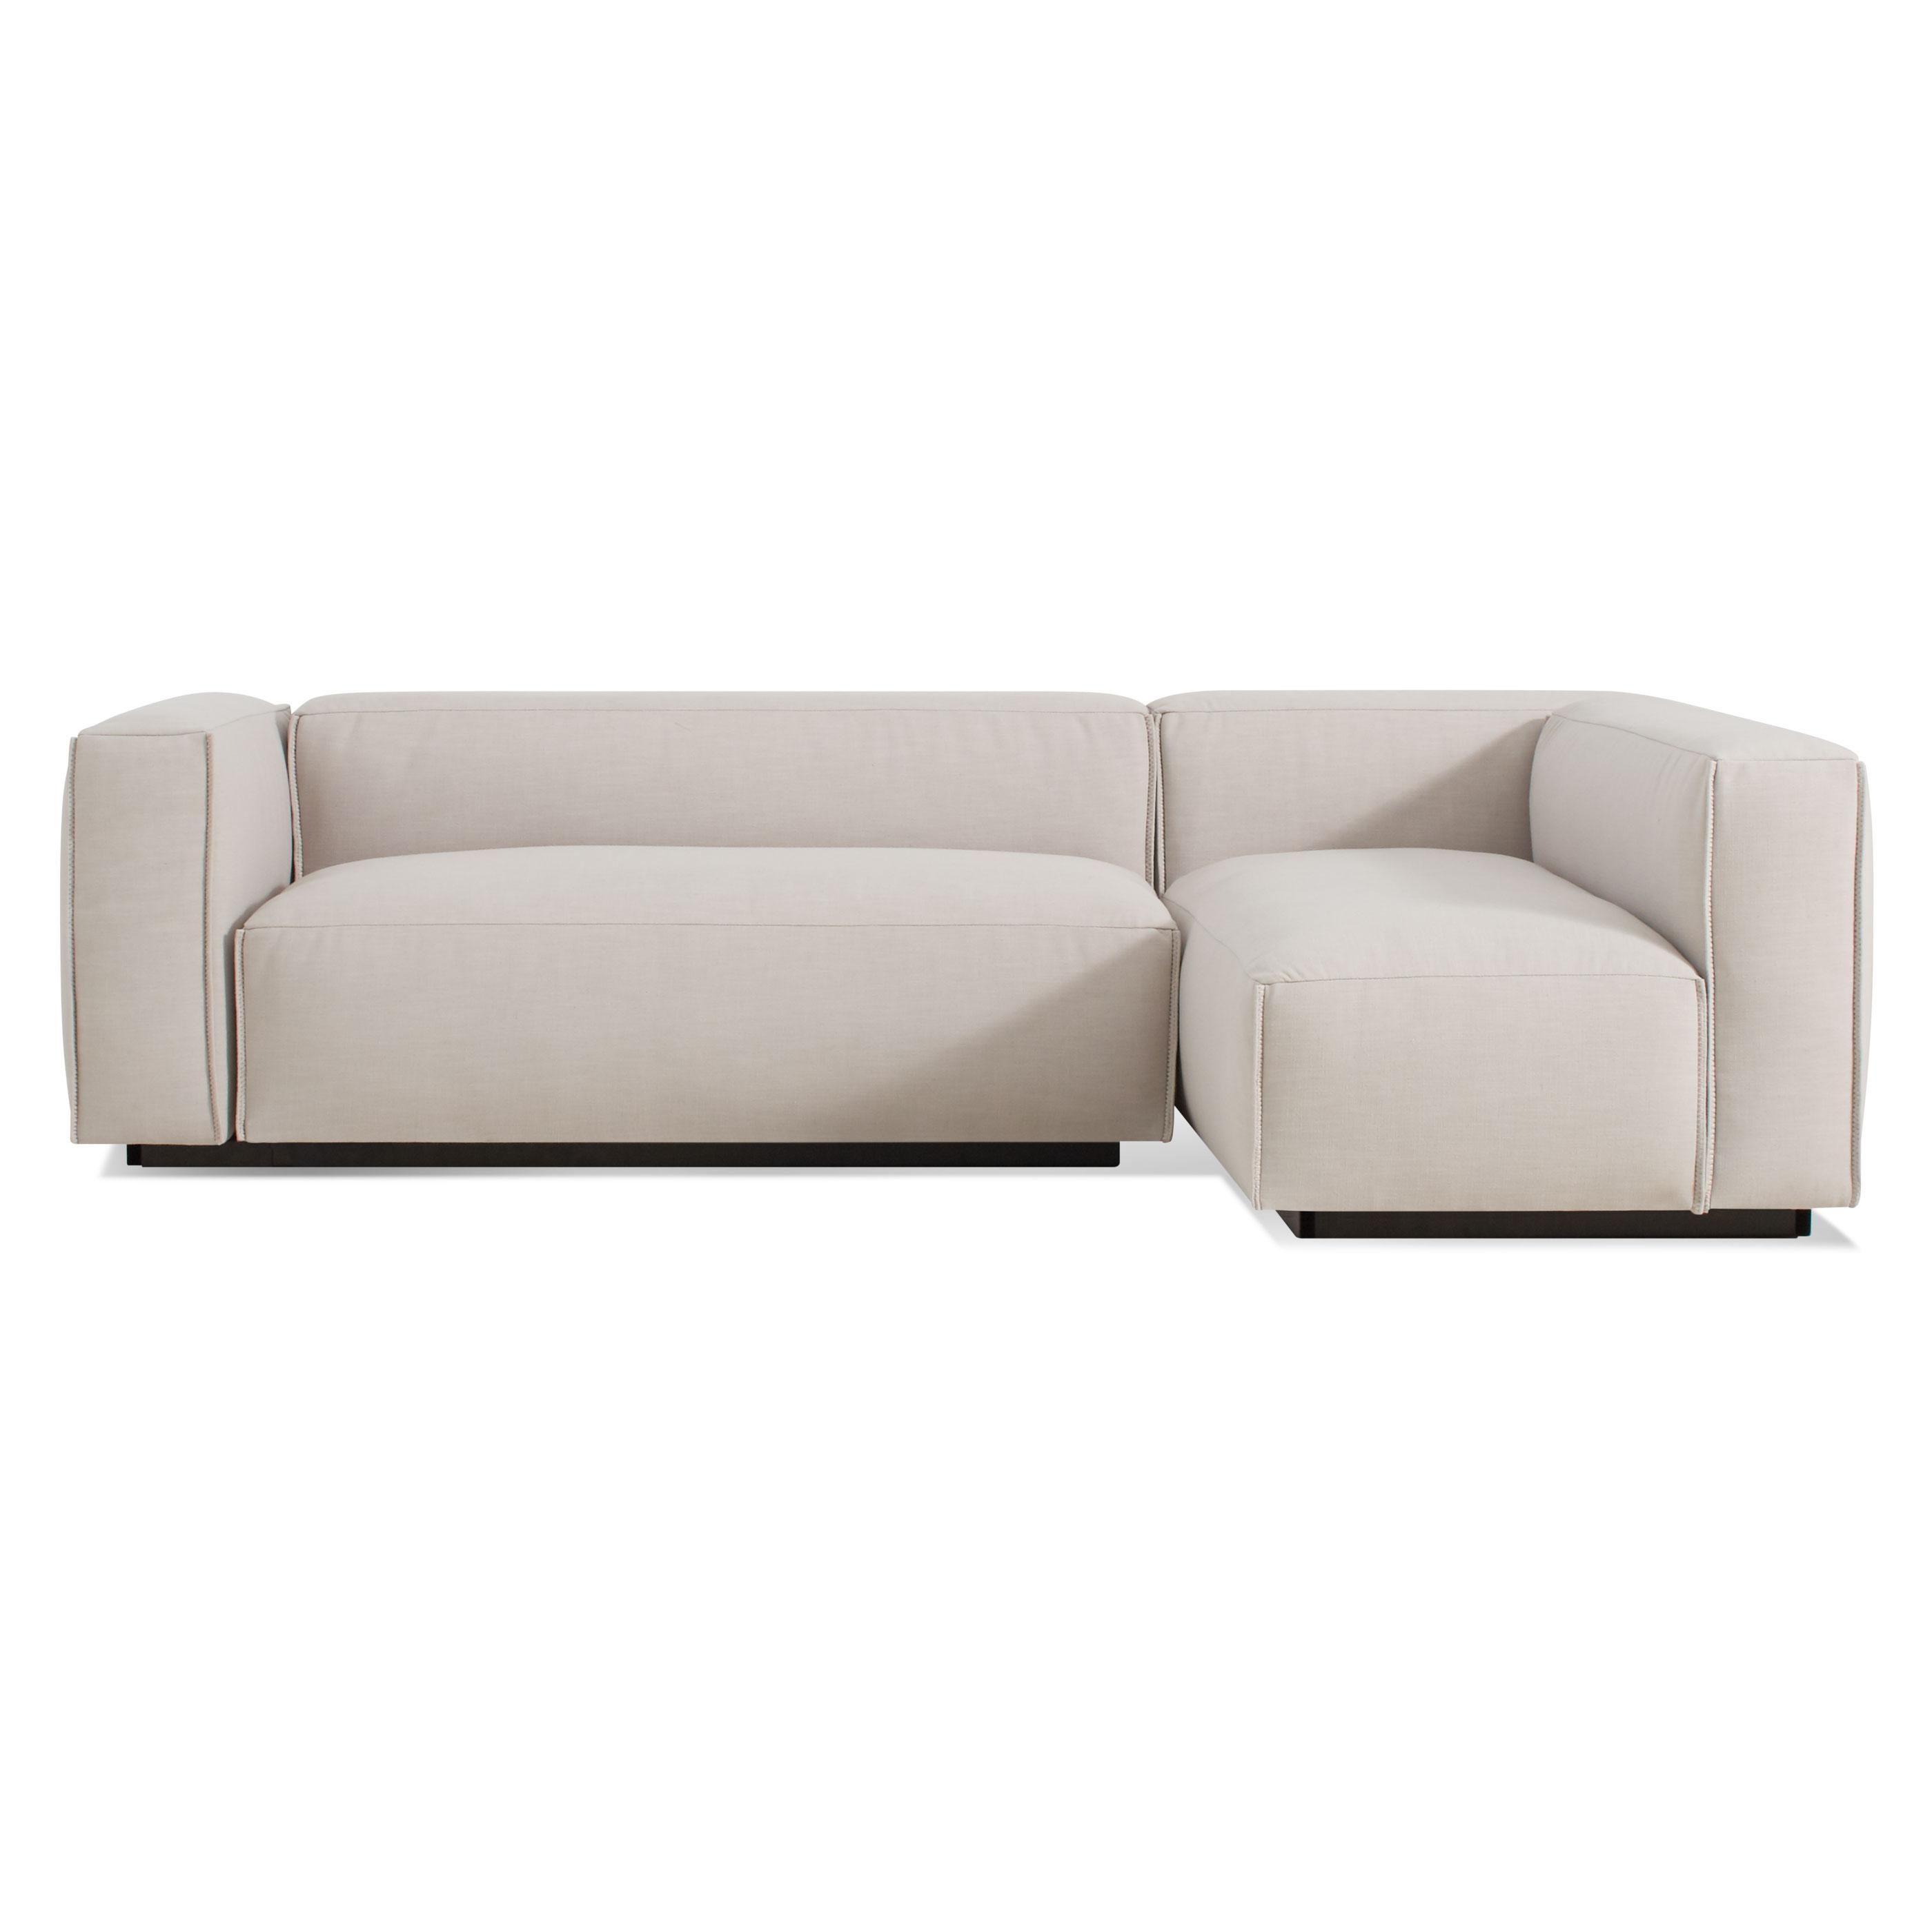 Cleon Small Modern Sectional Sofa | Blu Dot Intended For Mini Sectional  Sofas (Image 3